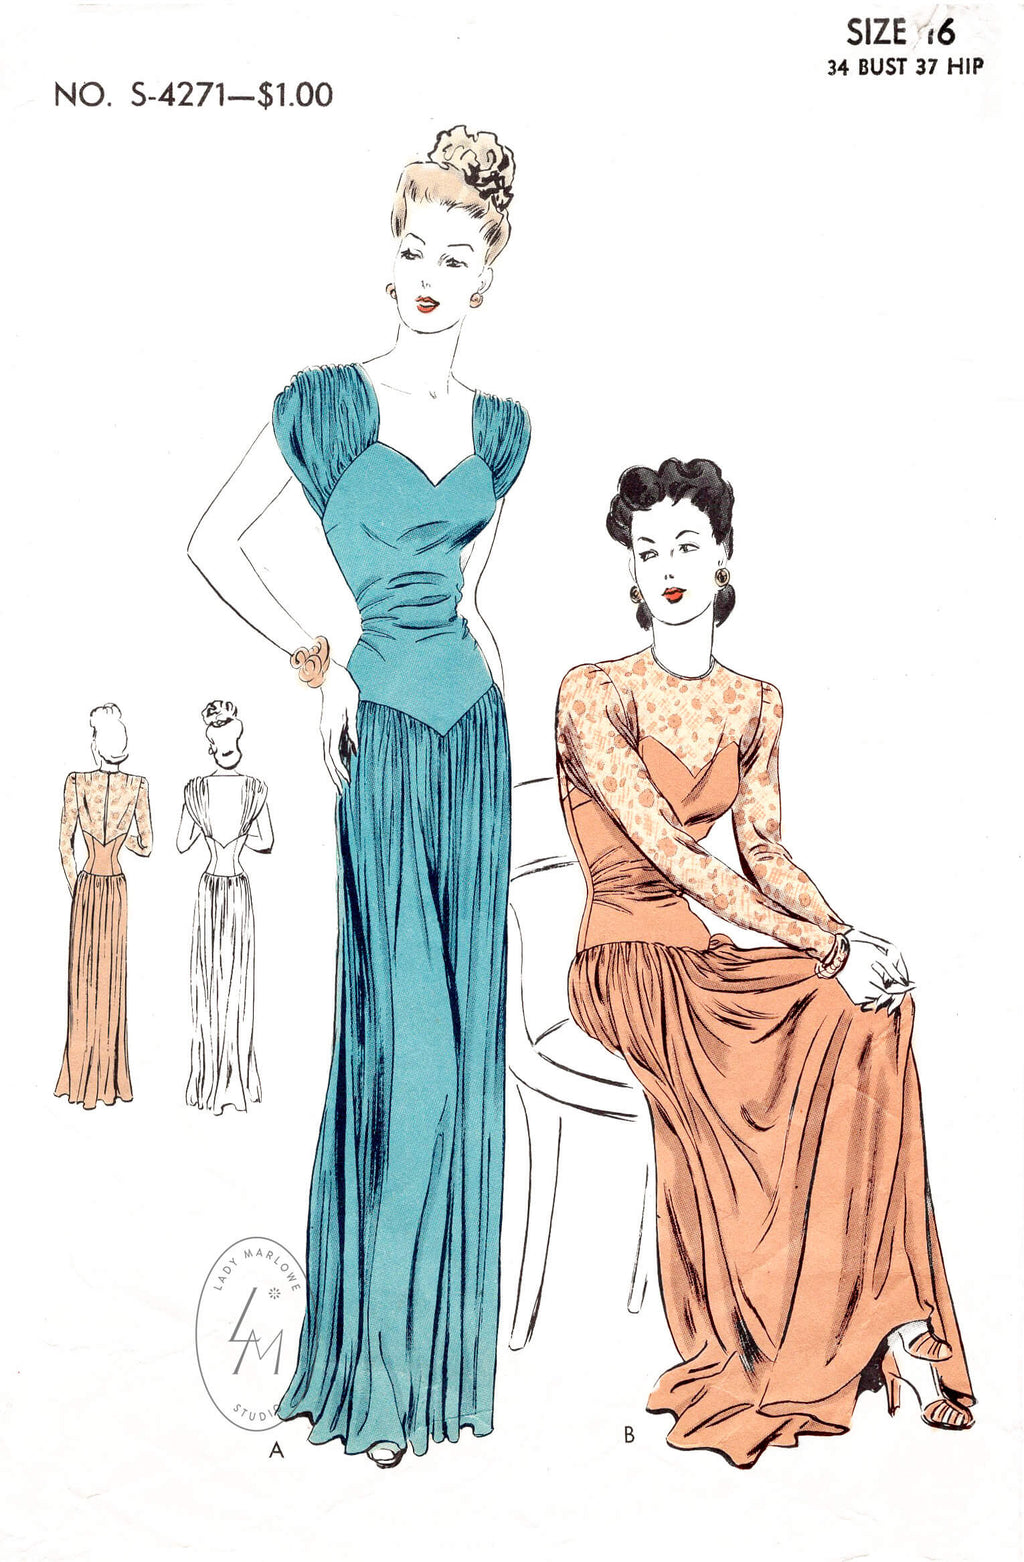 1940s vintage sewing pattern repro film noir dress evening gown in 2 styles Vogue S-4271